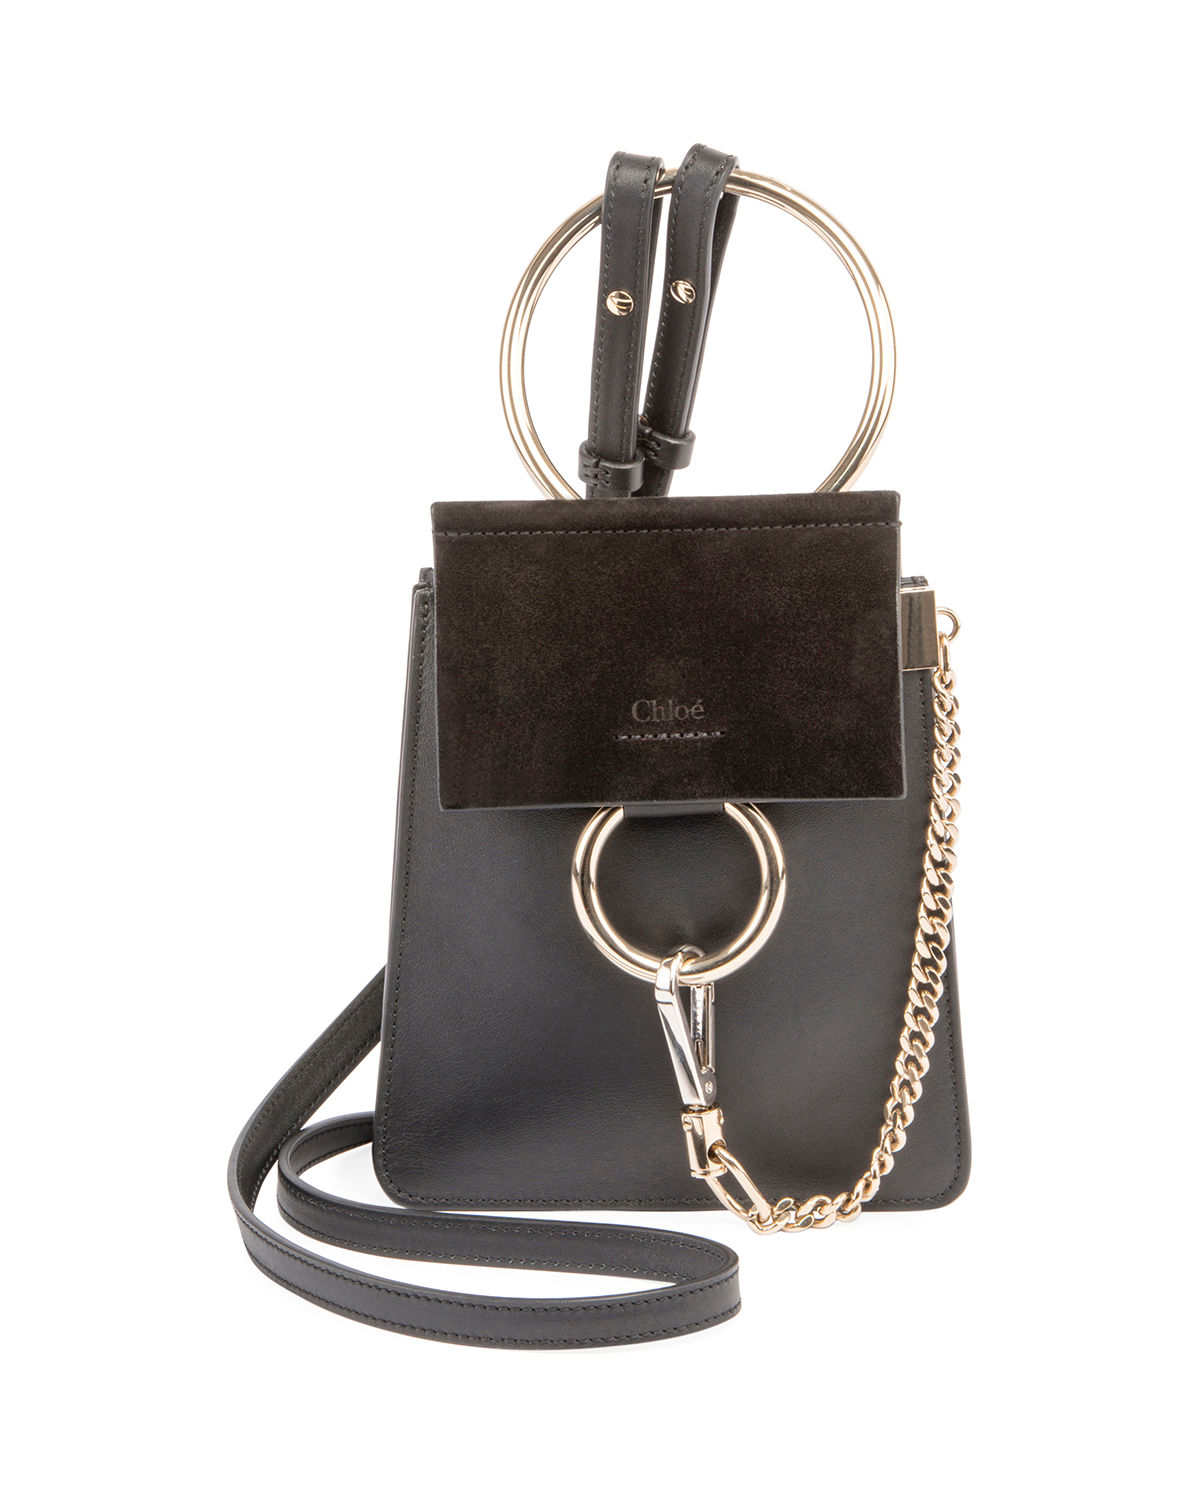 Chloe Faye Small Leather Bracelet Bag  6f4365ed8c